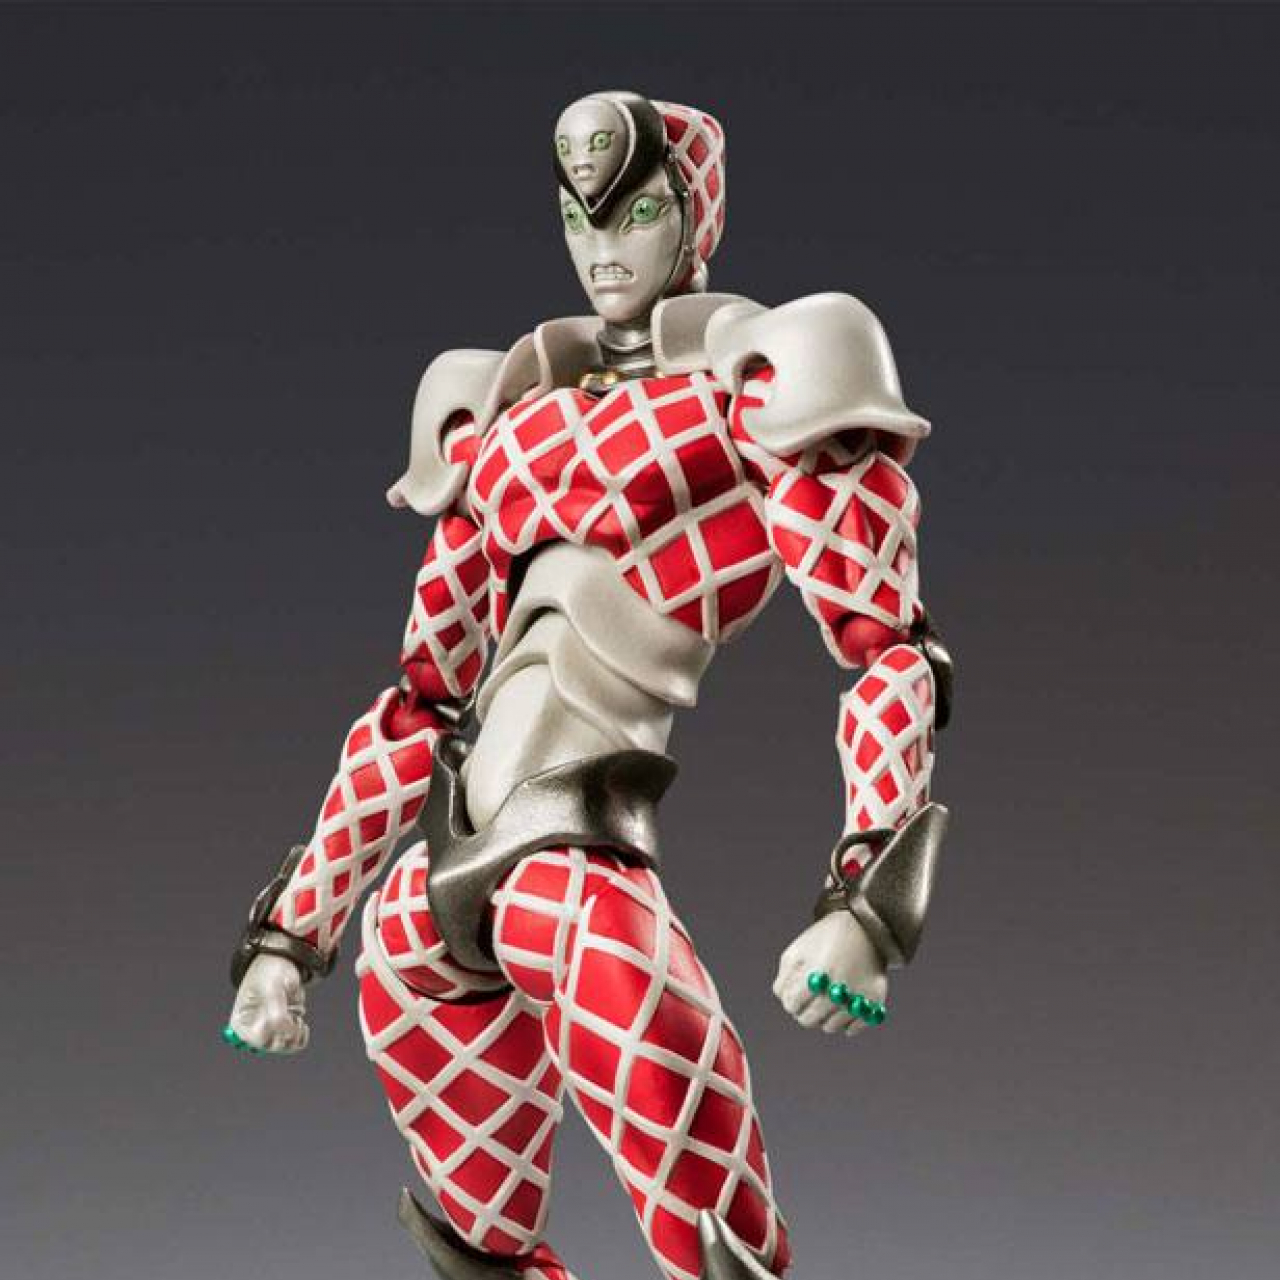 JoJo's Bizarre Adventure Super Action Action Figure Chozokado (KC) 17 cm